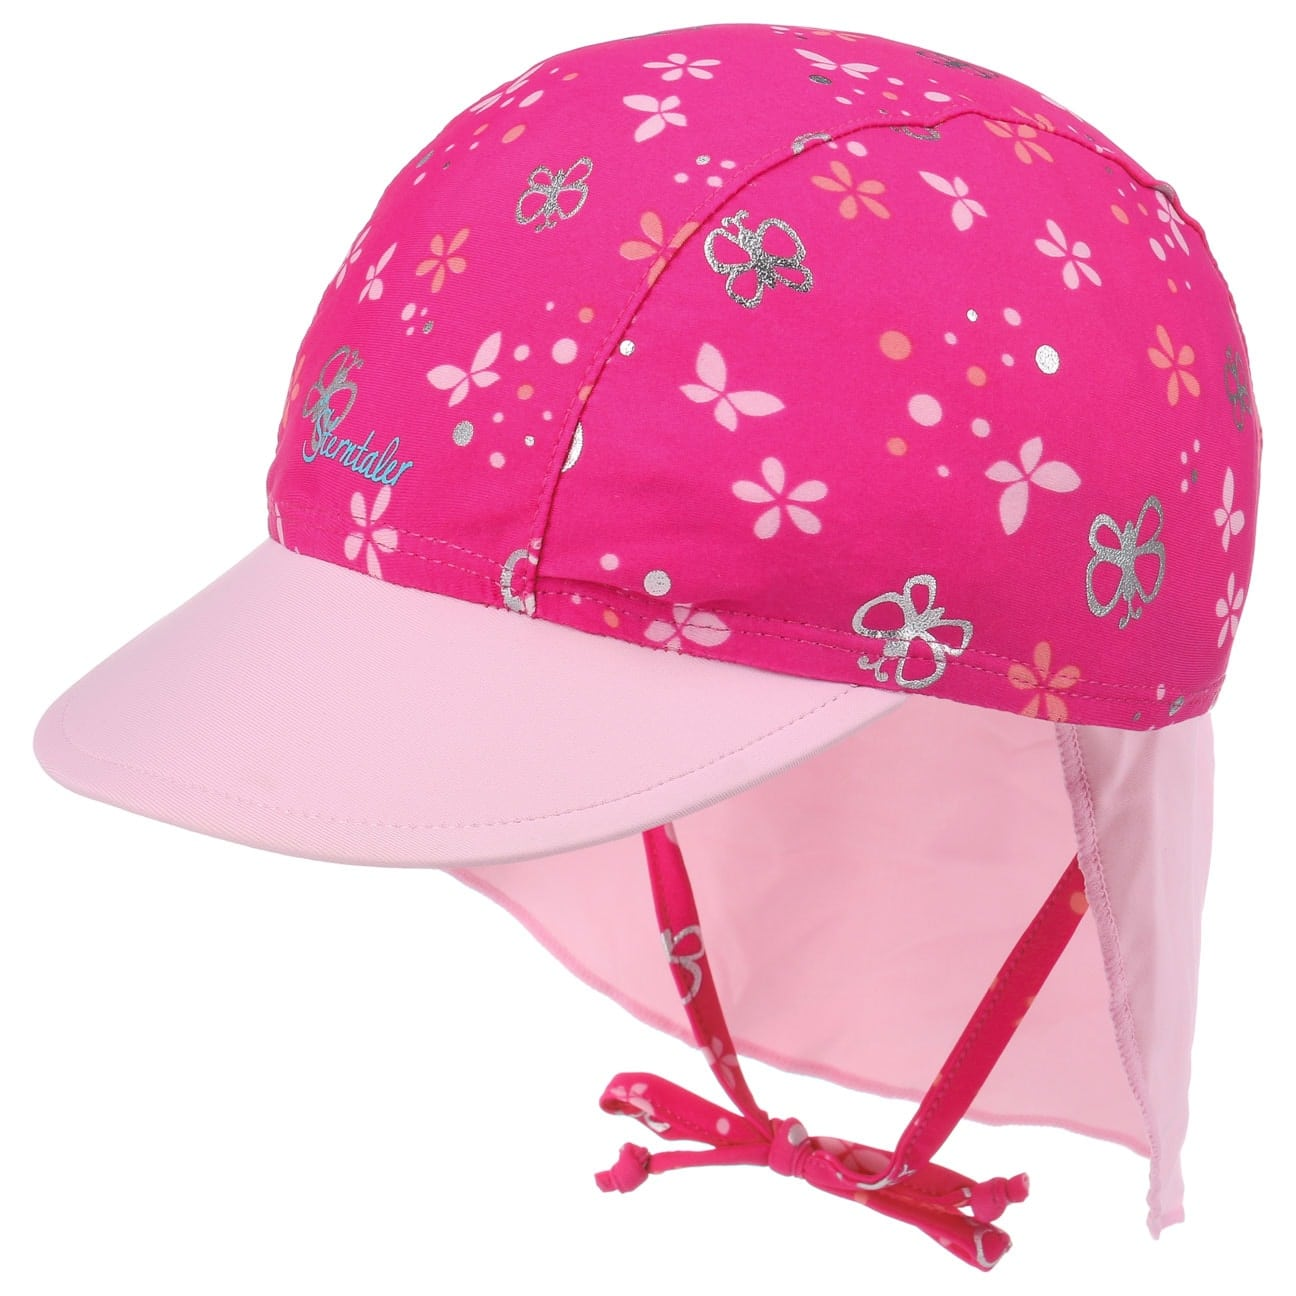 Gorra de Ba?o Girly by Sterntaler